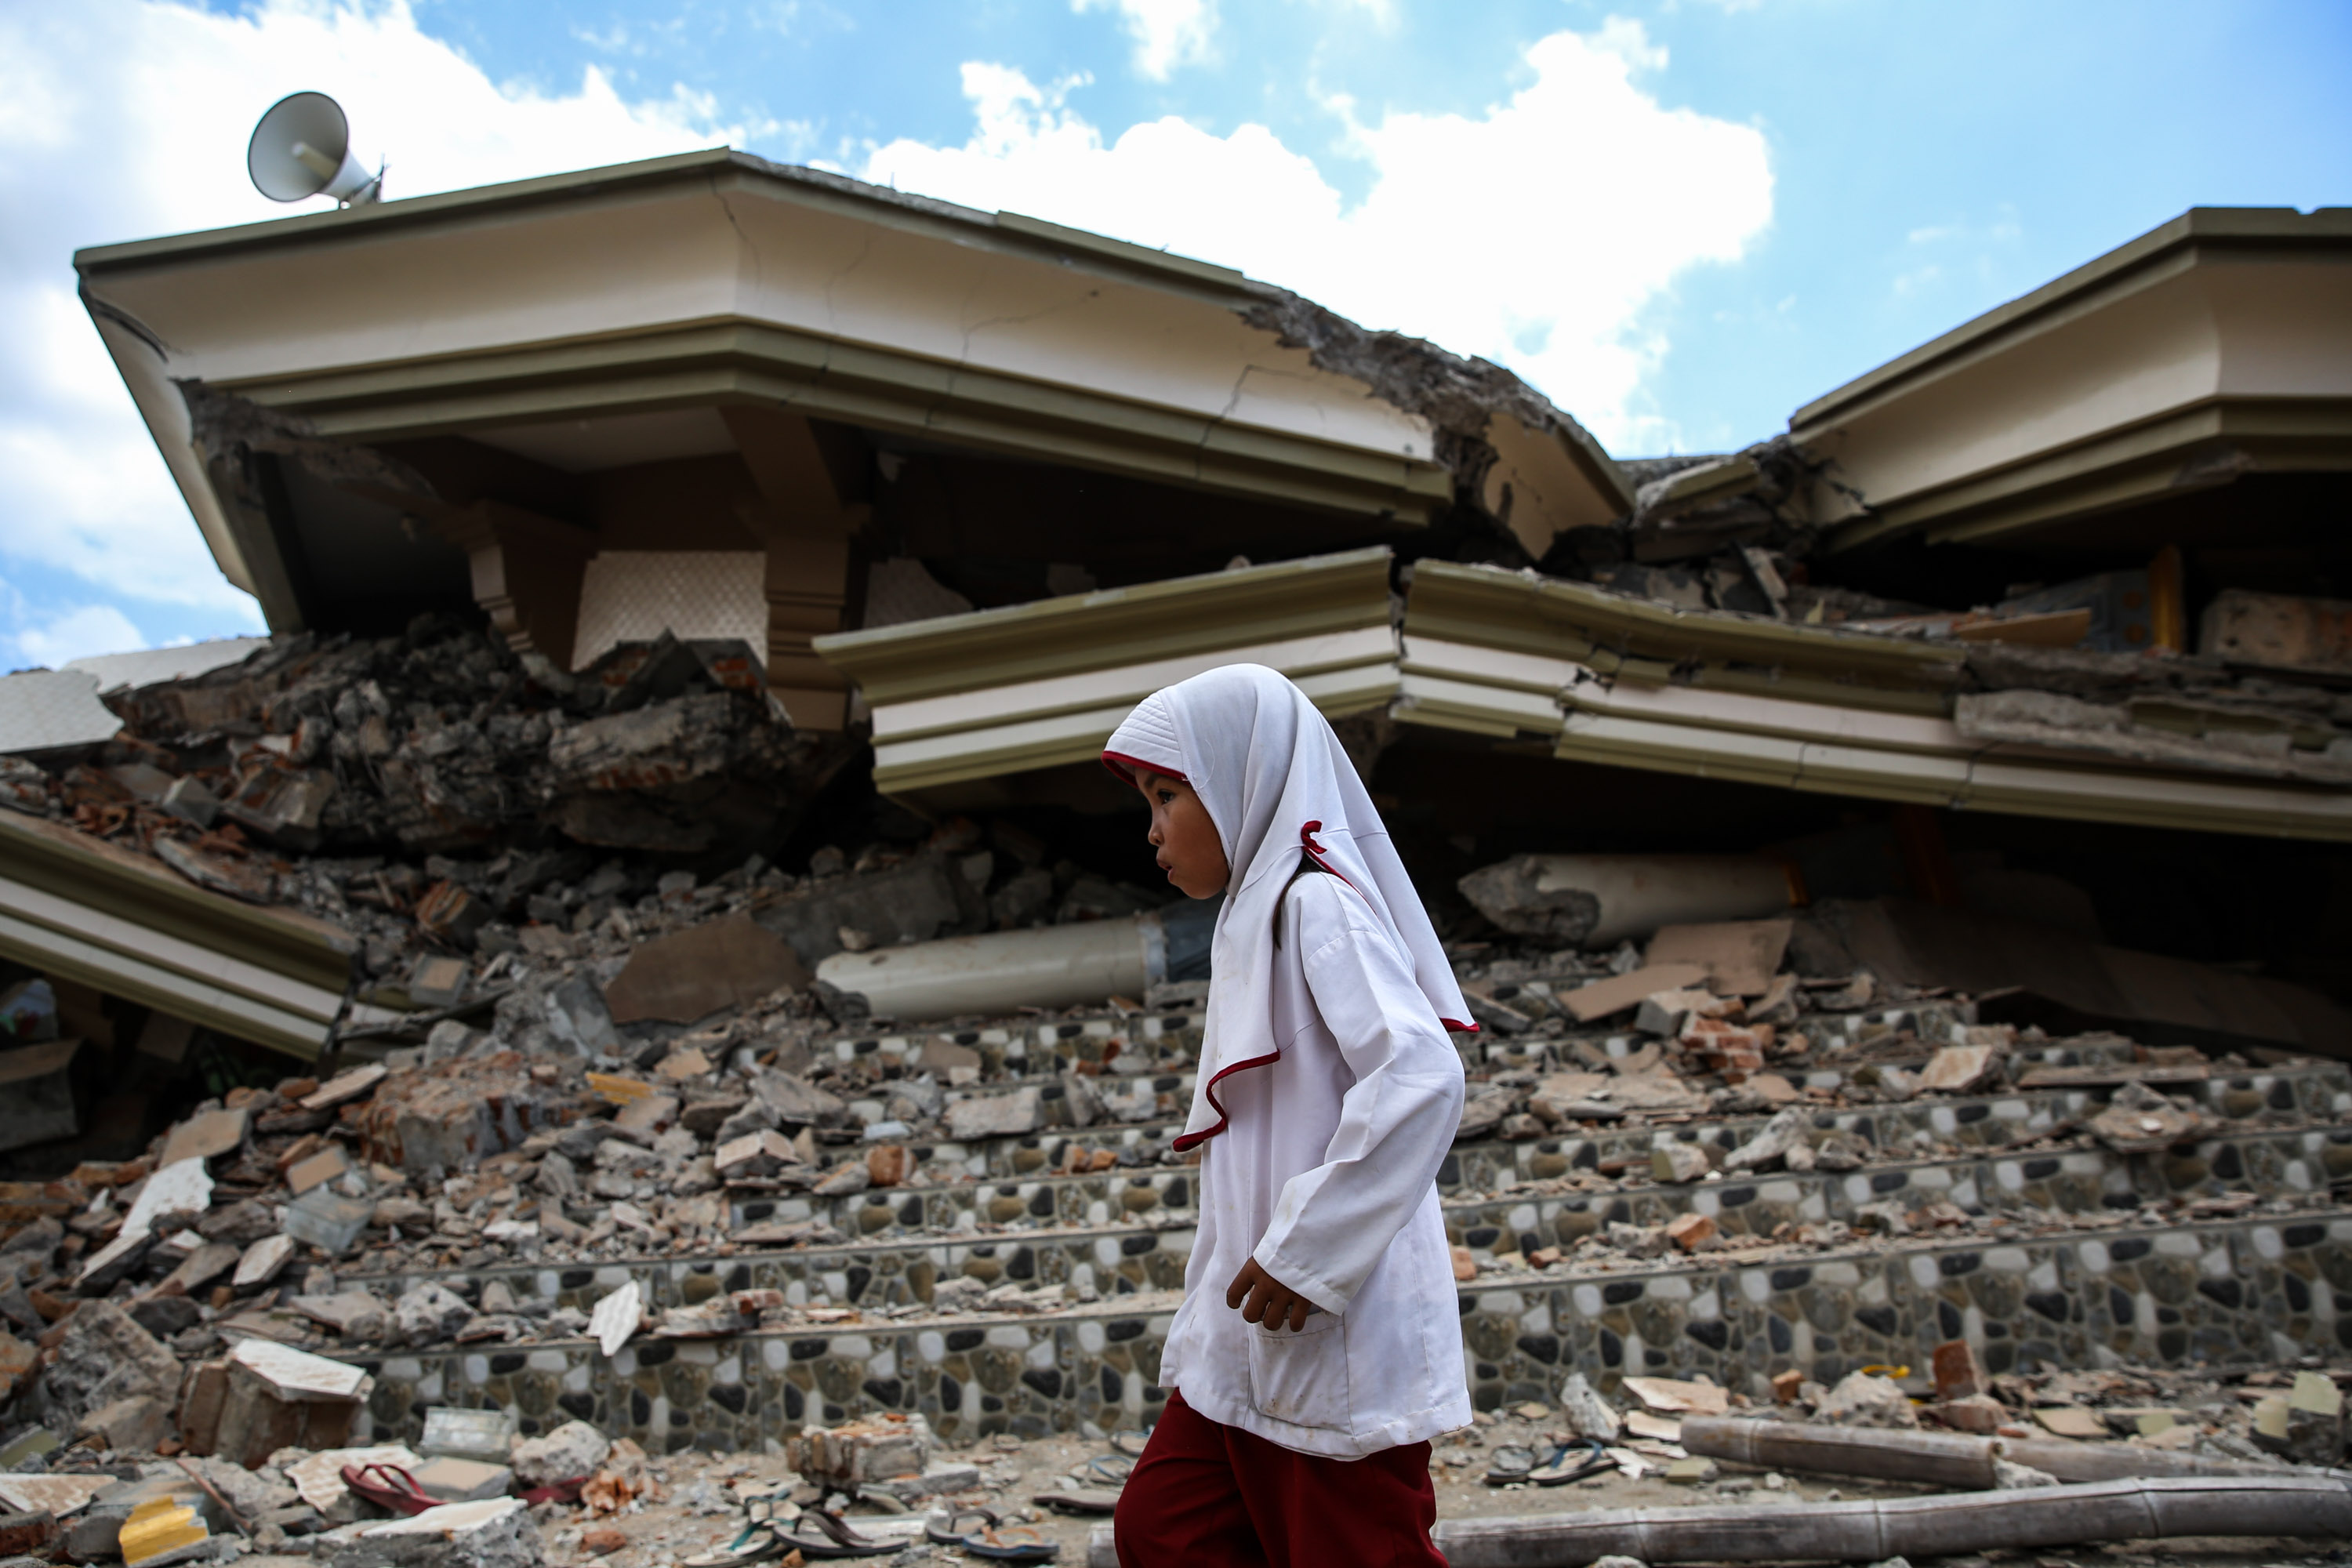 A girl stands next to a collapsed mosque after an earthquake in North Lombok, Indonesia on Aug. 7, 2018.